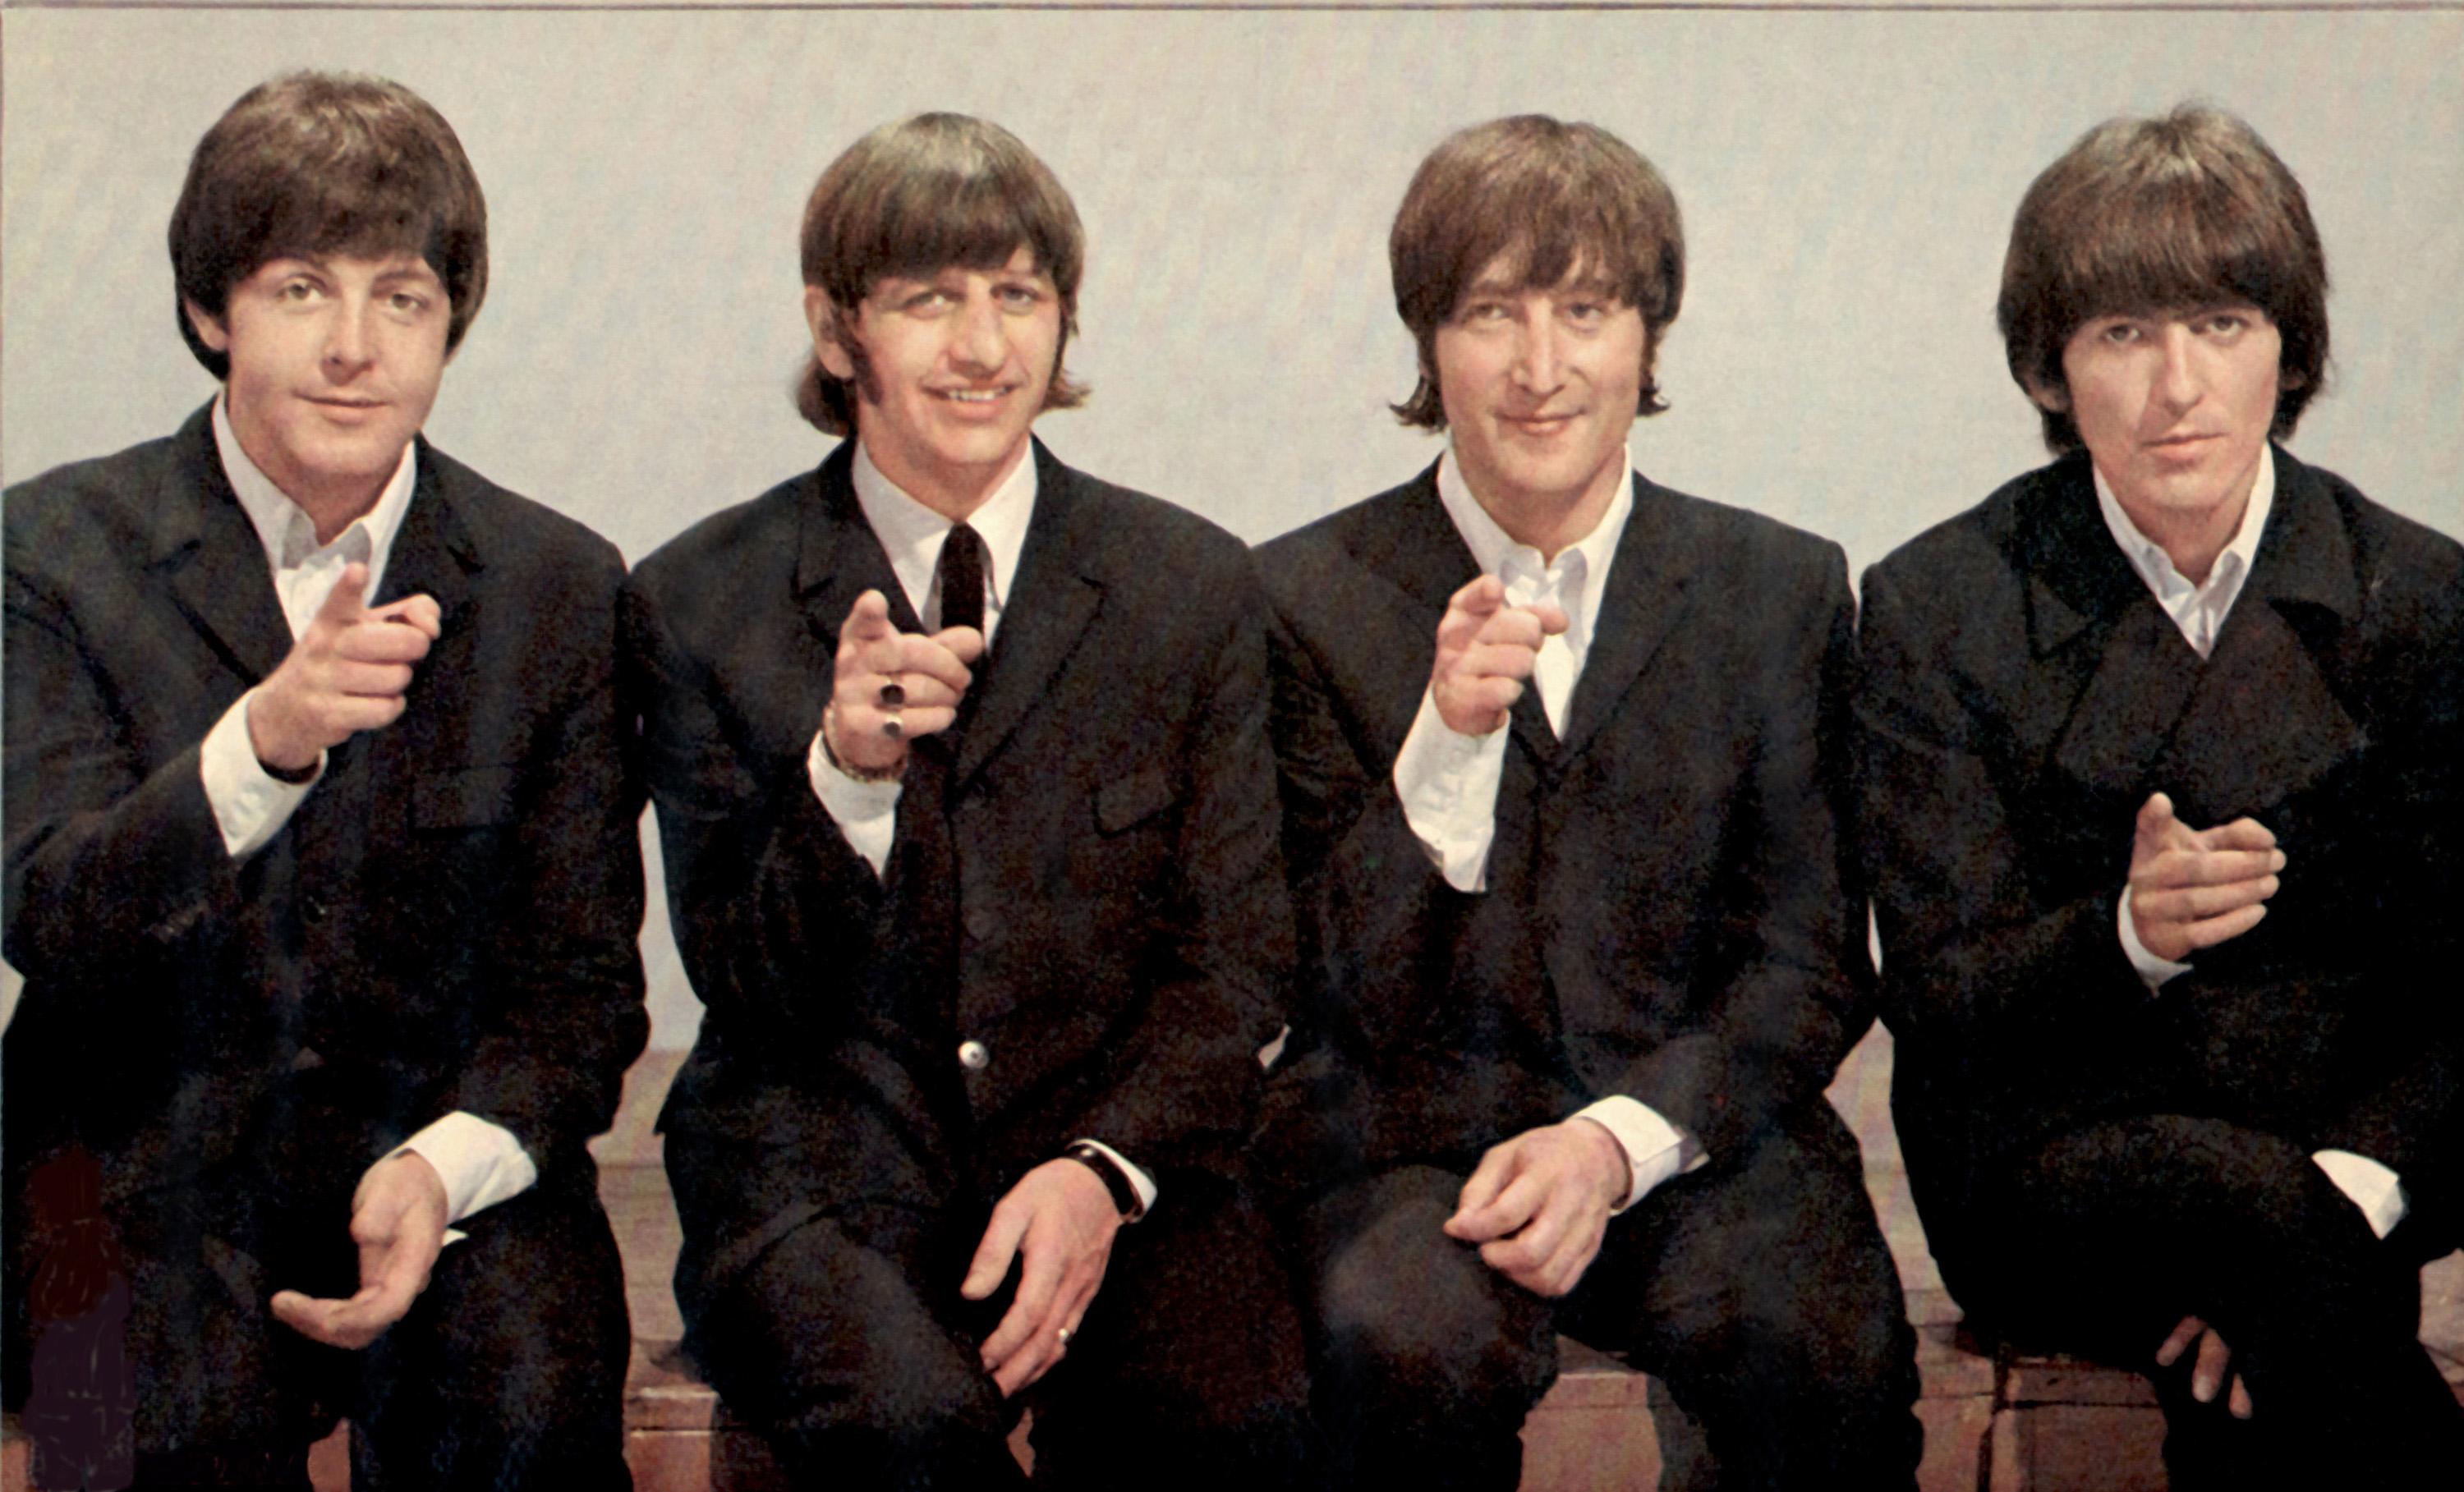 The Beatles Songs Streamed 50 Million Times in 48 Hours | Time